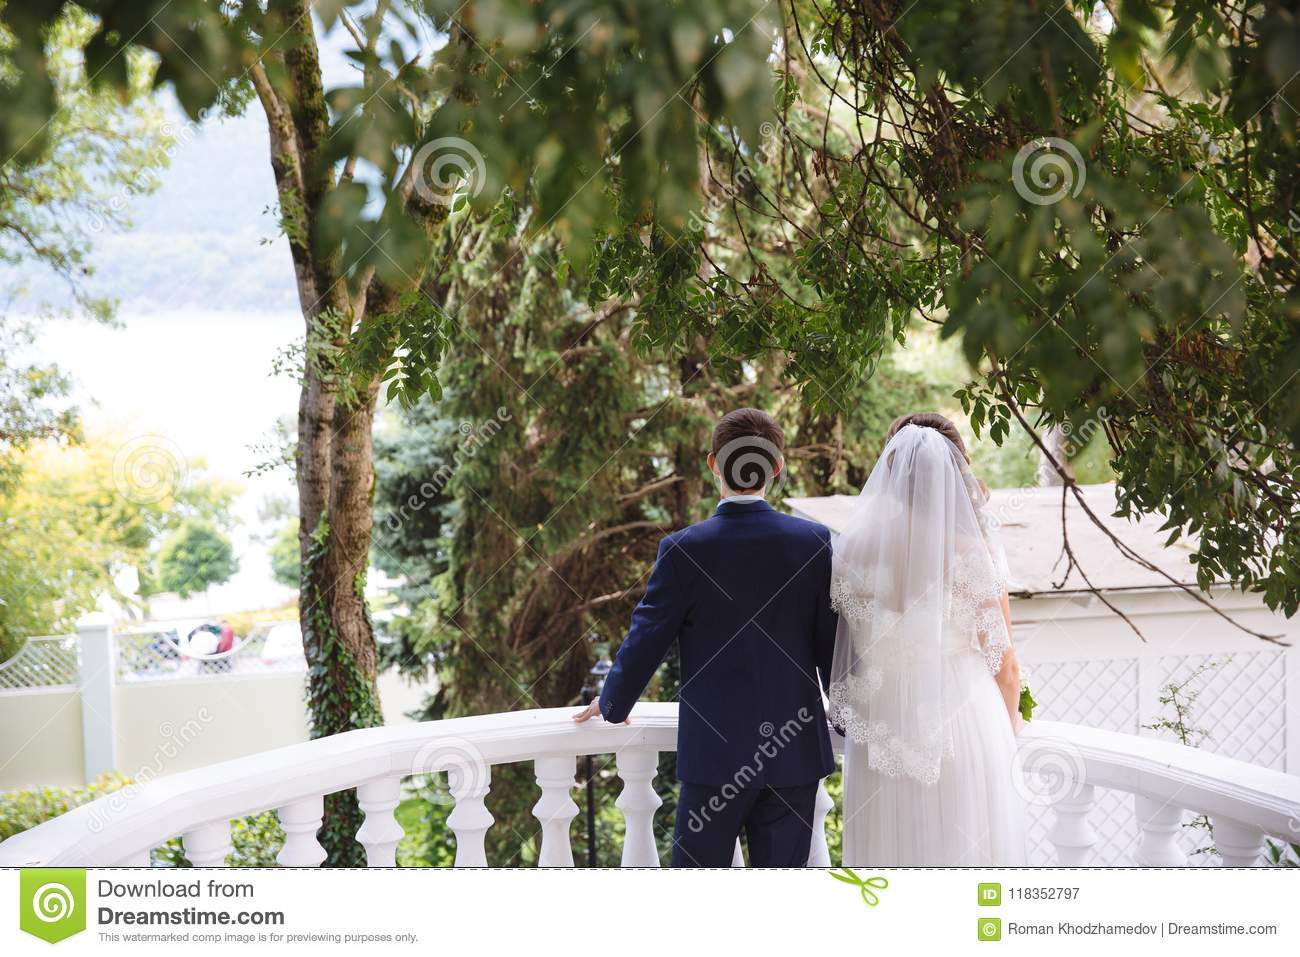 41ff26f150 A women with a white lace veil and a wedding dress is holding a men in a  business suit, a couple is standing on the balcony and admiring the view of  the ...